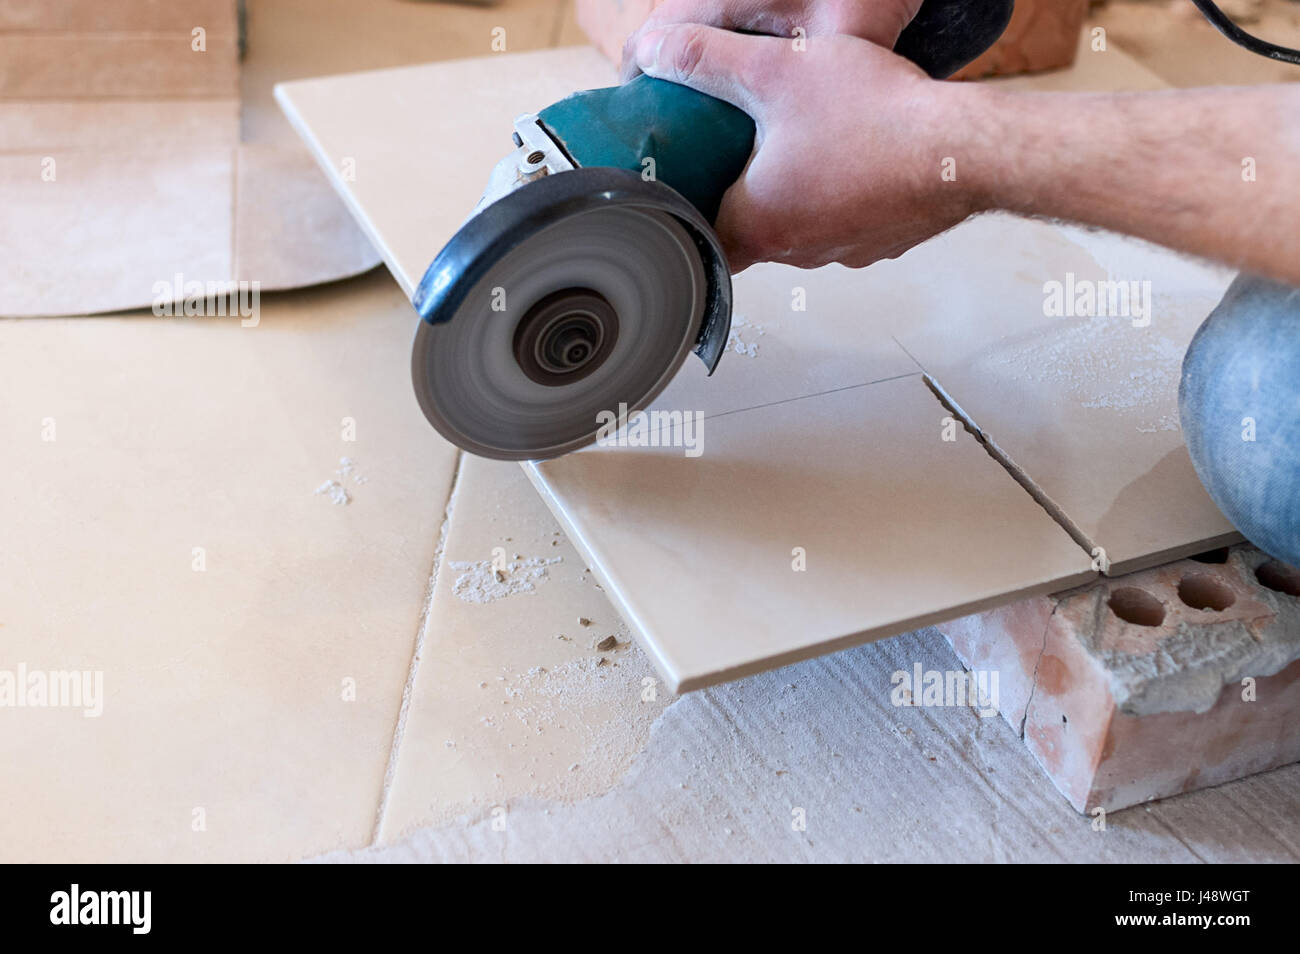 https www alamy com stock photo a construction worker cutting a tile using an angle grinder 140337256 html